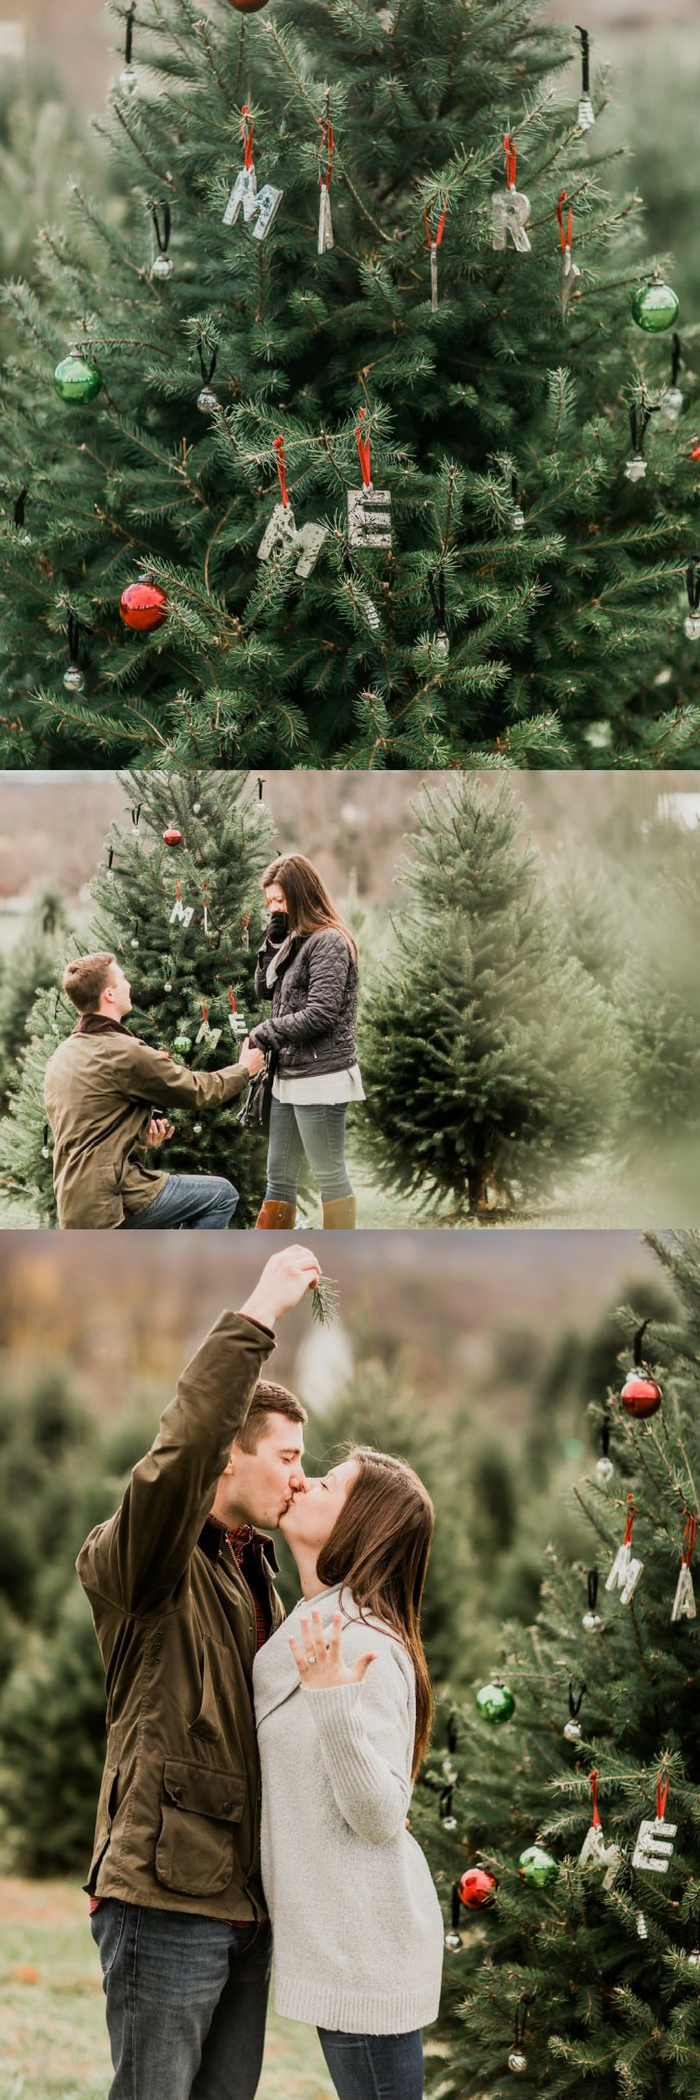 Paige and AJ\'s Christmas Tree Farm Proposal on HowHeAsked.com ...